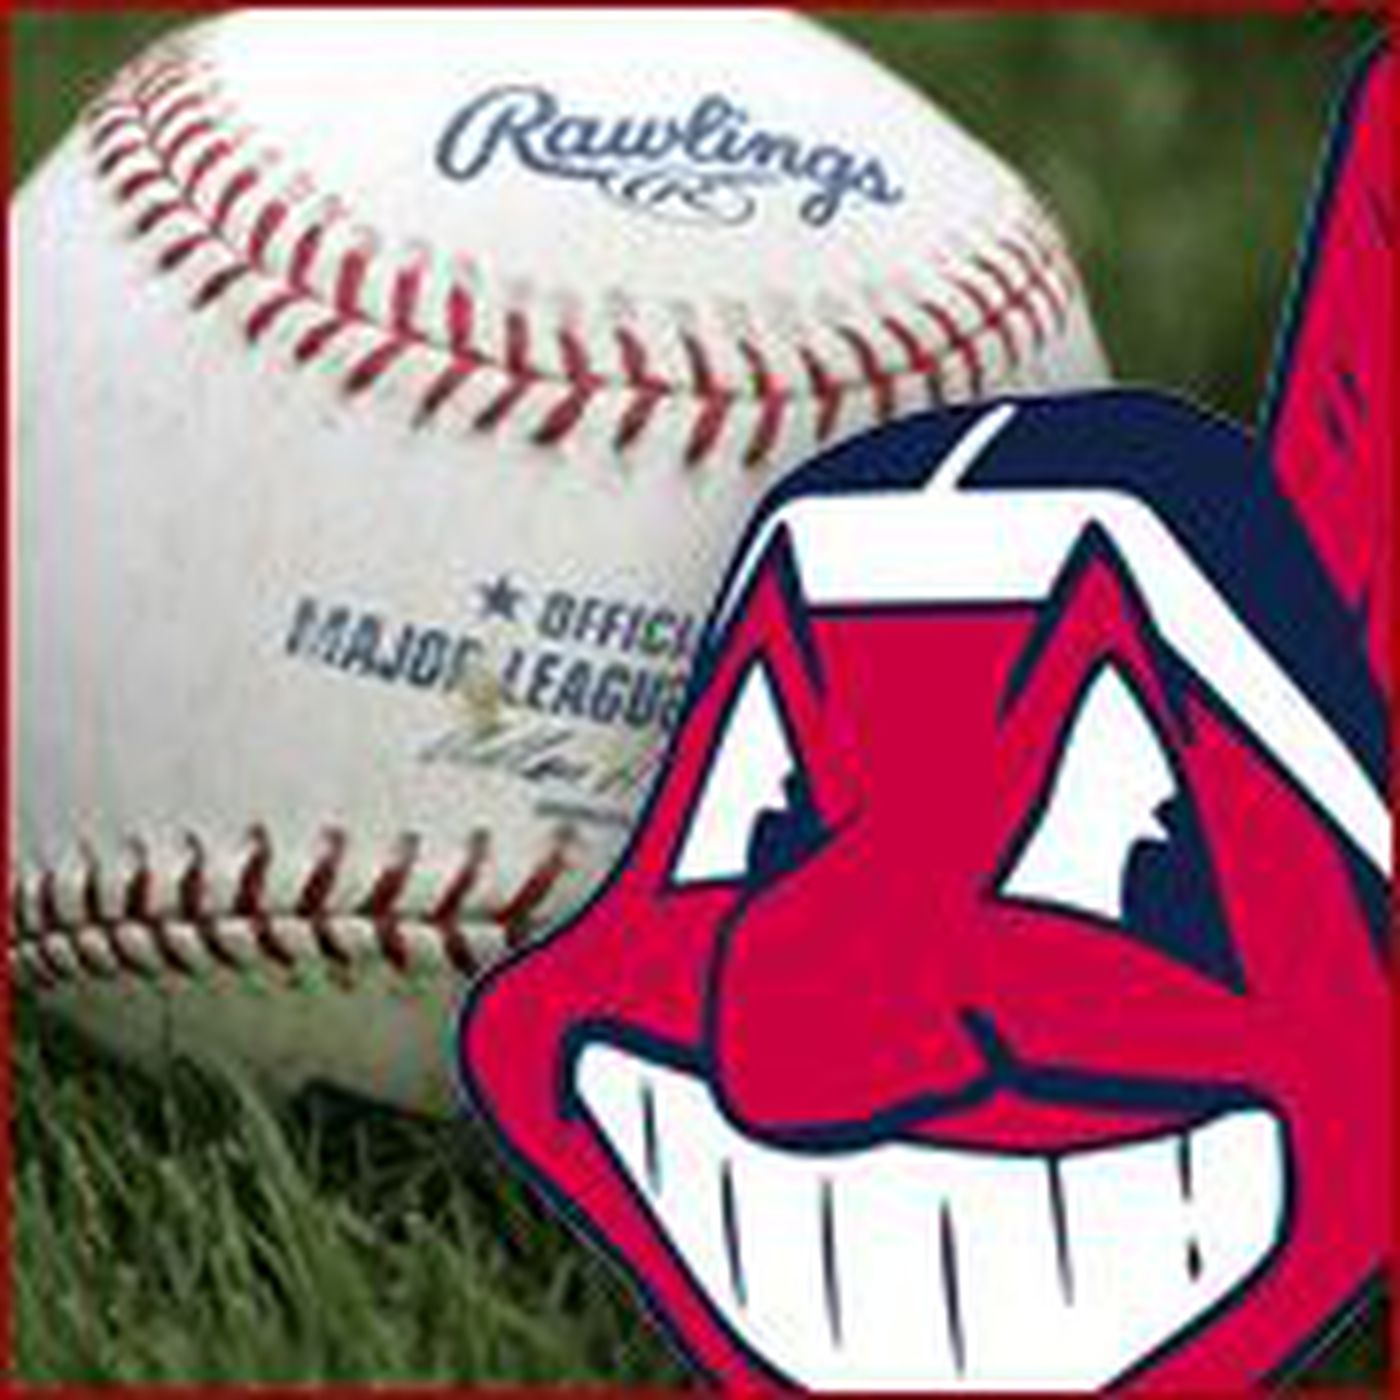 playoff schedule: indians vs. red sox